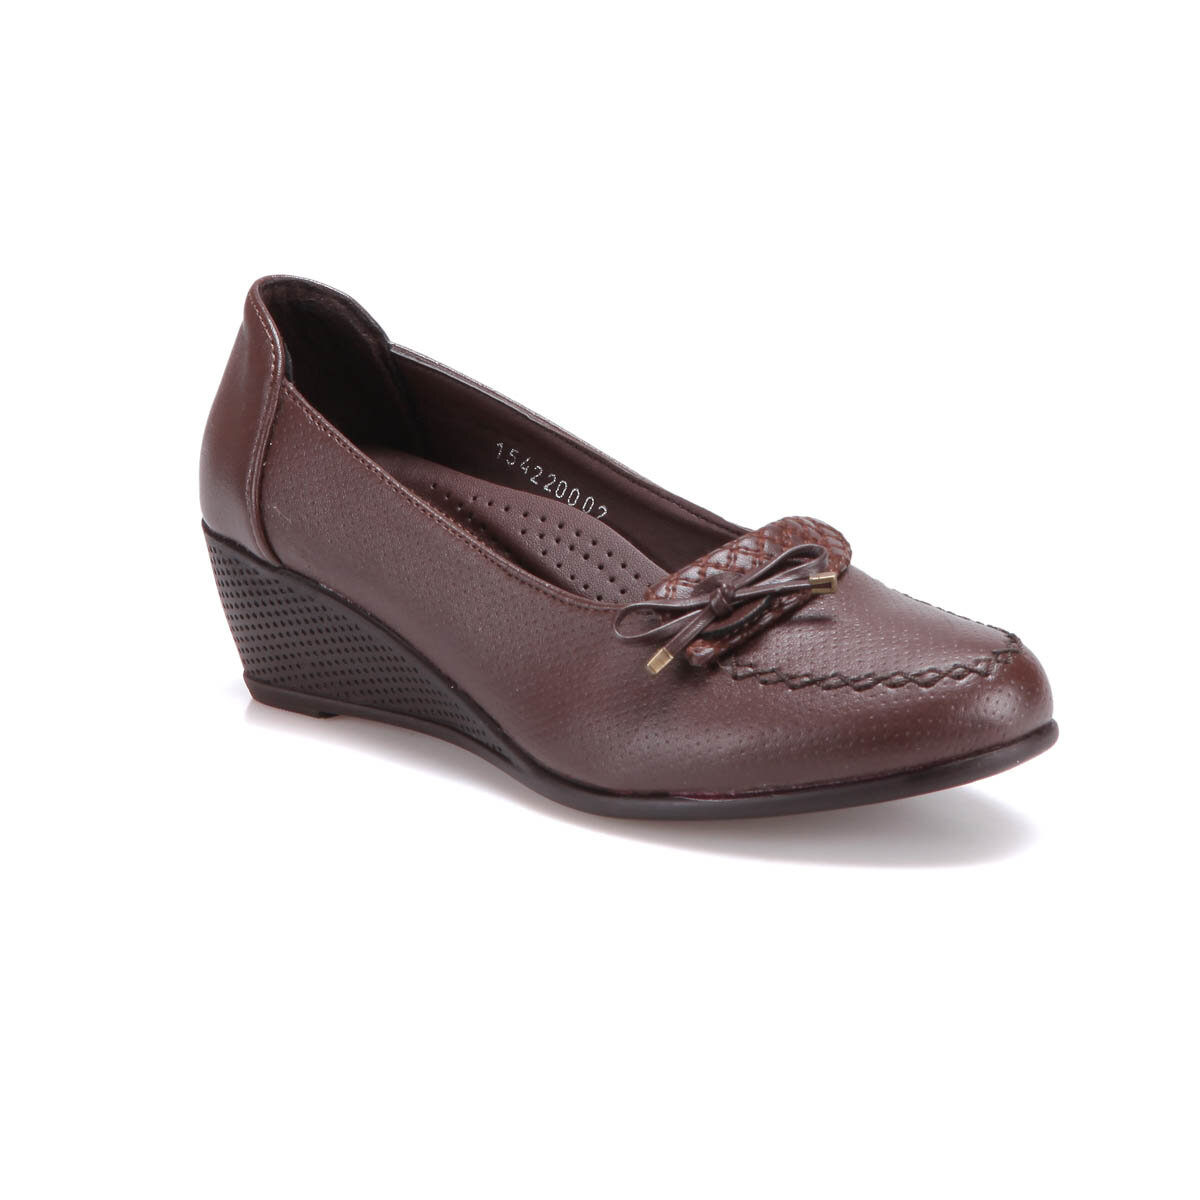 FLO 71.154220.Z Brown Women 'S Classic Shoes Polaris